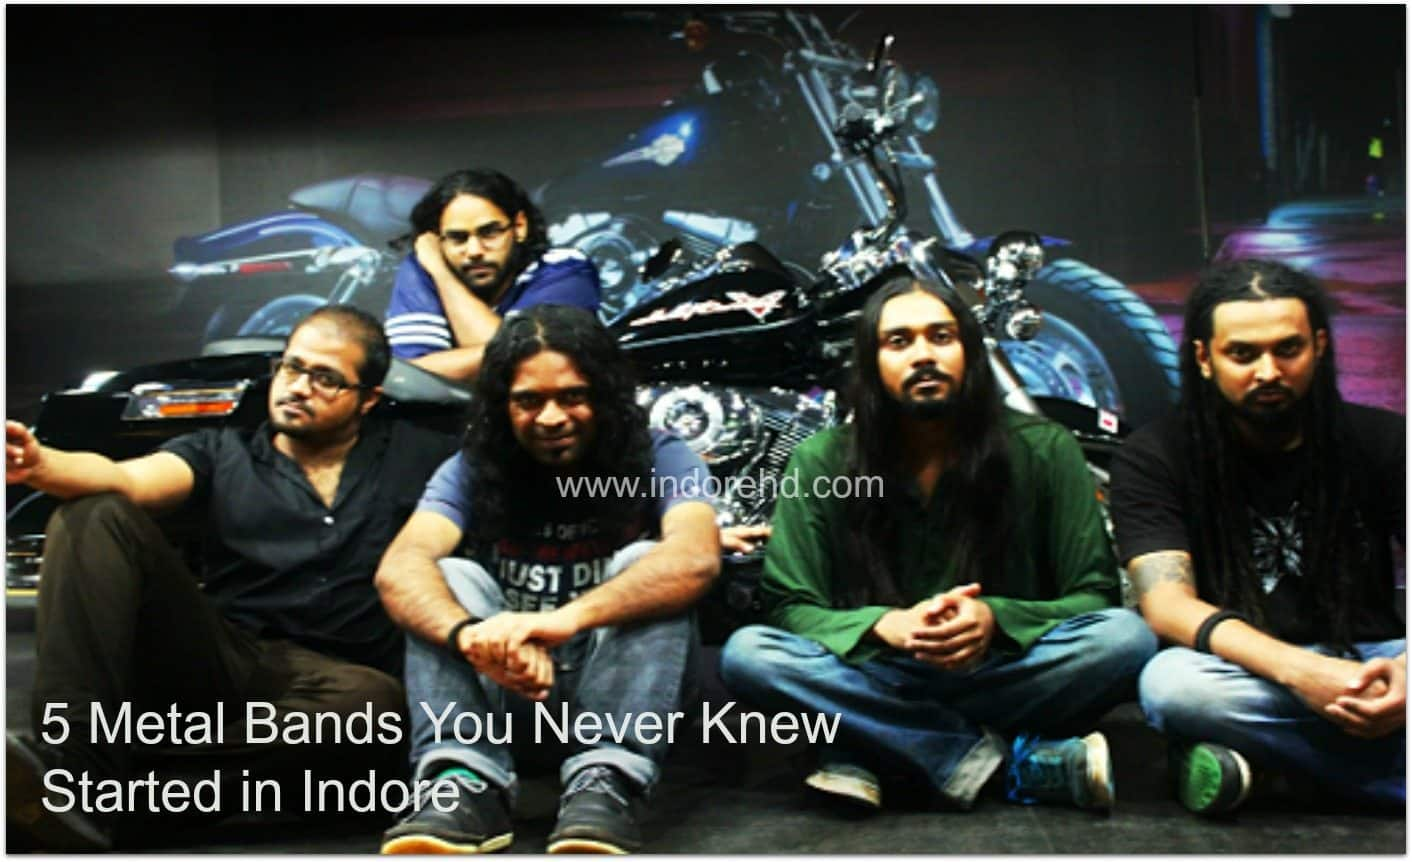 5 metal bands you never knew started in Indore-HD